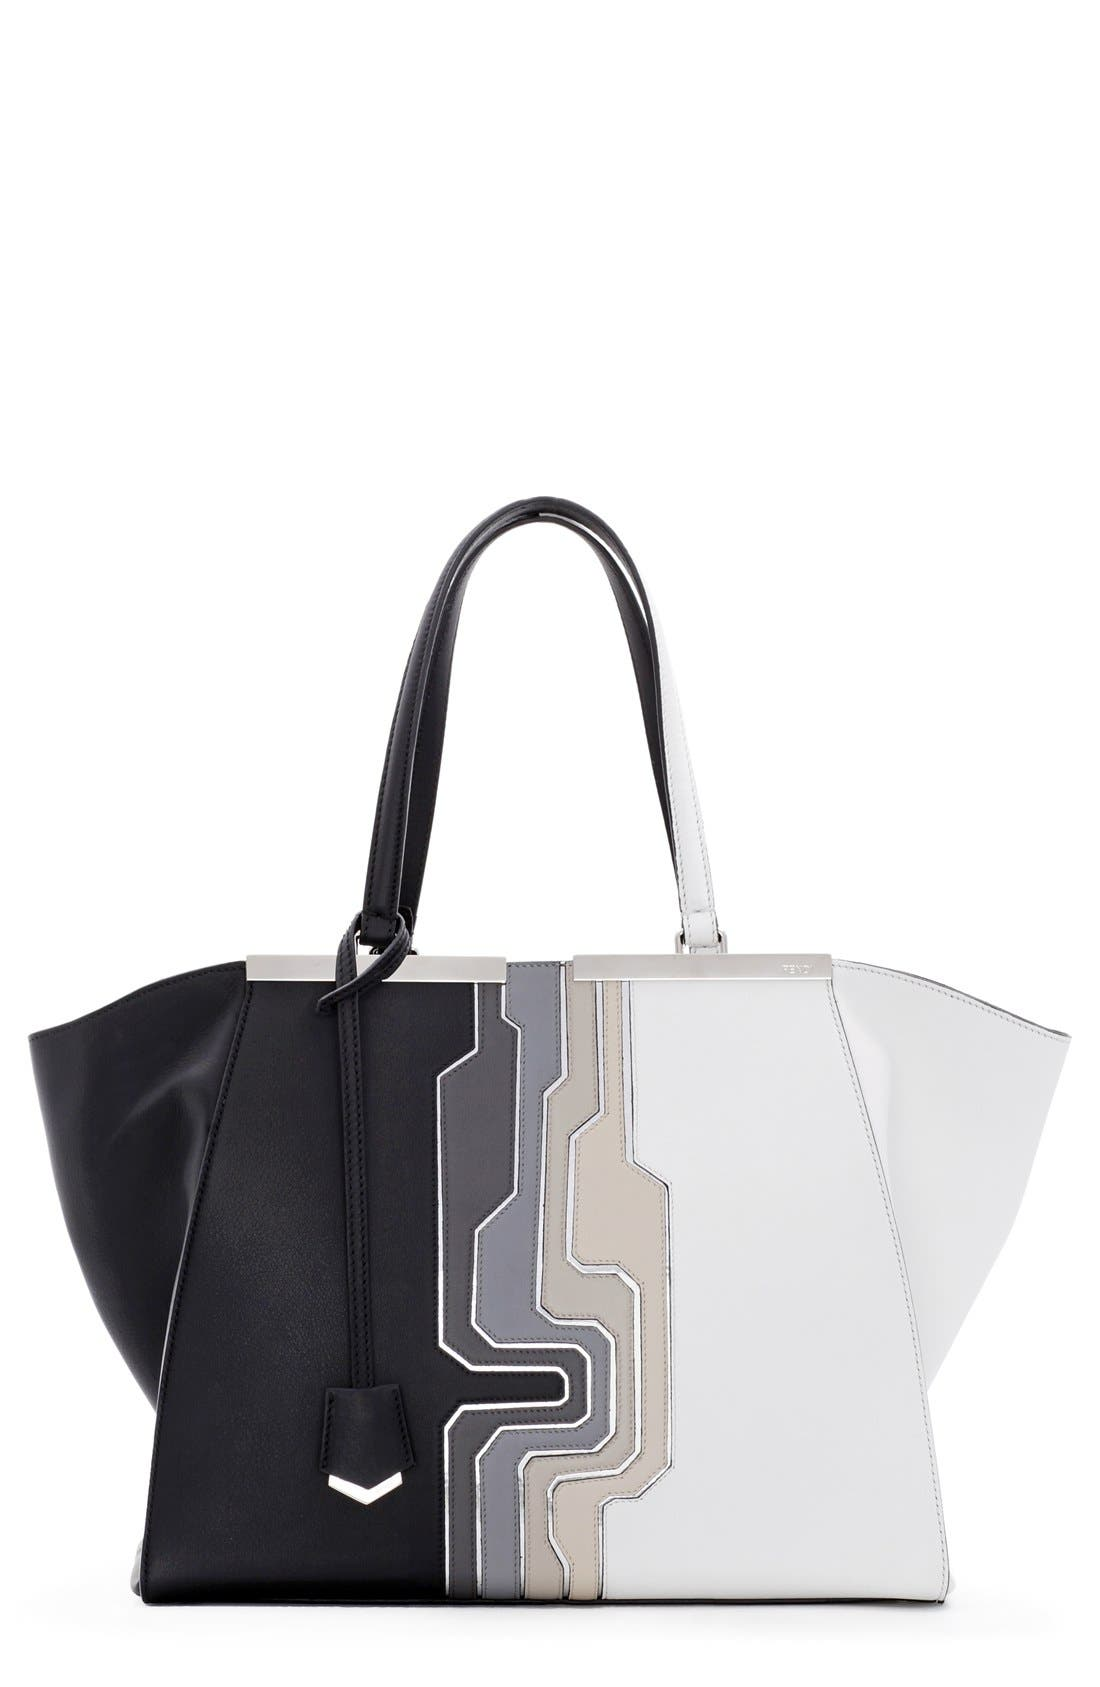 Main Image - Fendi '3Jours - Computer' Leather Shopper